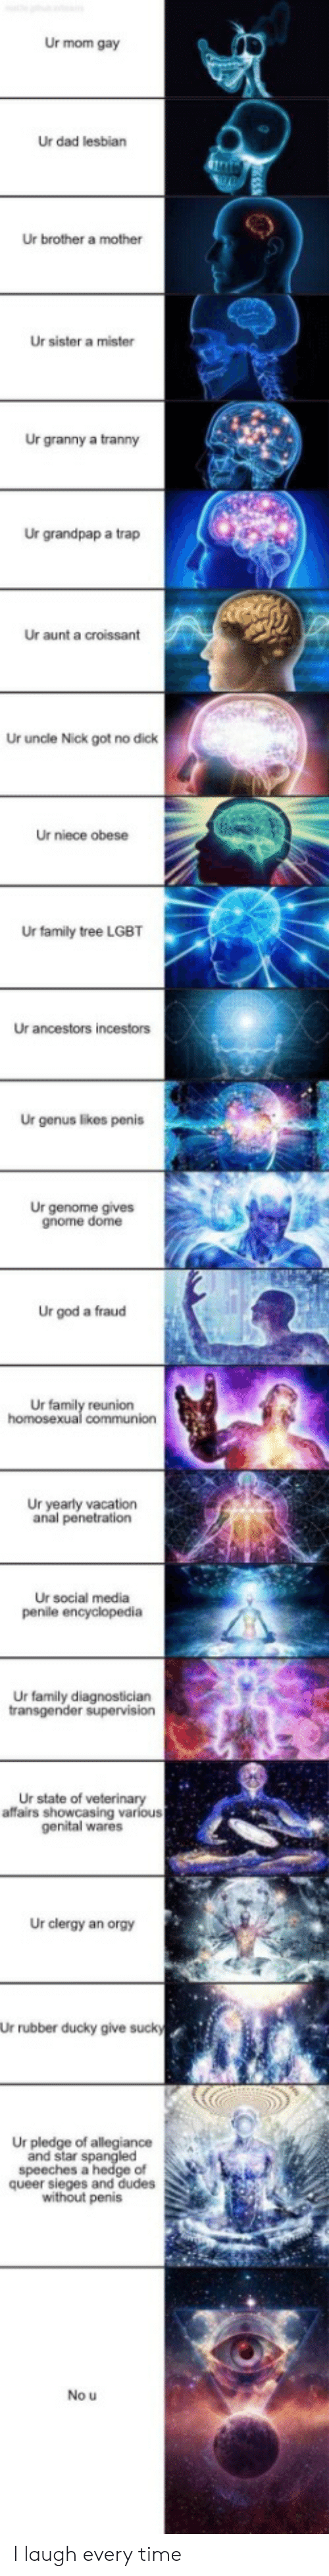 Dad, Family, and God: Ur mom gay  Ur dad lesbian  Ur brother a mother  Ur sister a mister  Ur granny a tranny  Ur grandpap a trap  Ur aunt a croissant  Ur uncle Nick got no dick  Ur niece obese  Ur family tree LGBT  Ur ancestors incestors  Ur genus likes penis  Ur genome gives  gnome dome  Ur god a fraud  Ur family reunion  homosexual communion  Ur yearly vacation  anal penetration  Ur social media  penile encyclopedia  Ur family diagnostician  transgender supervision  Ur state of veterinary  affairs showcasing various  genital wares  Ur clergy an orgy  Ur rubber ducky give sucky  Ur pledge of allegiance  and star spangled  speeches a hedge of  queer sieges and dudes  without penis  No u I laugh every time